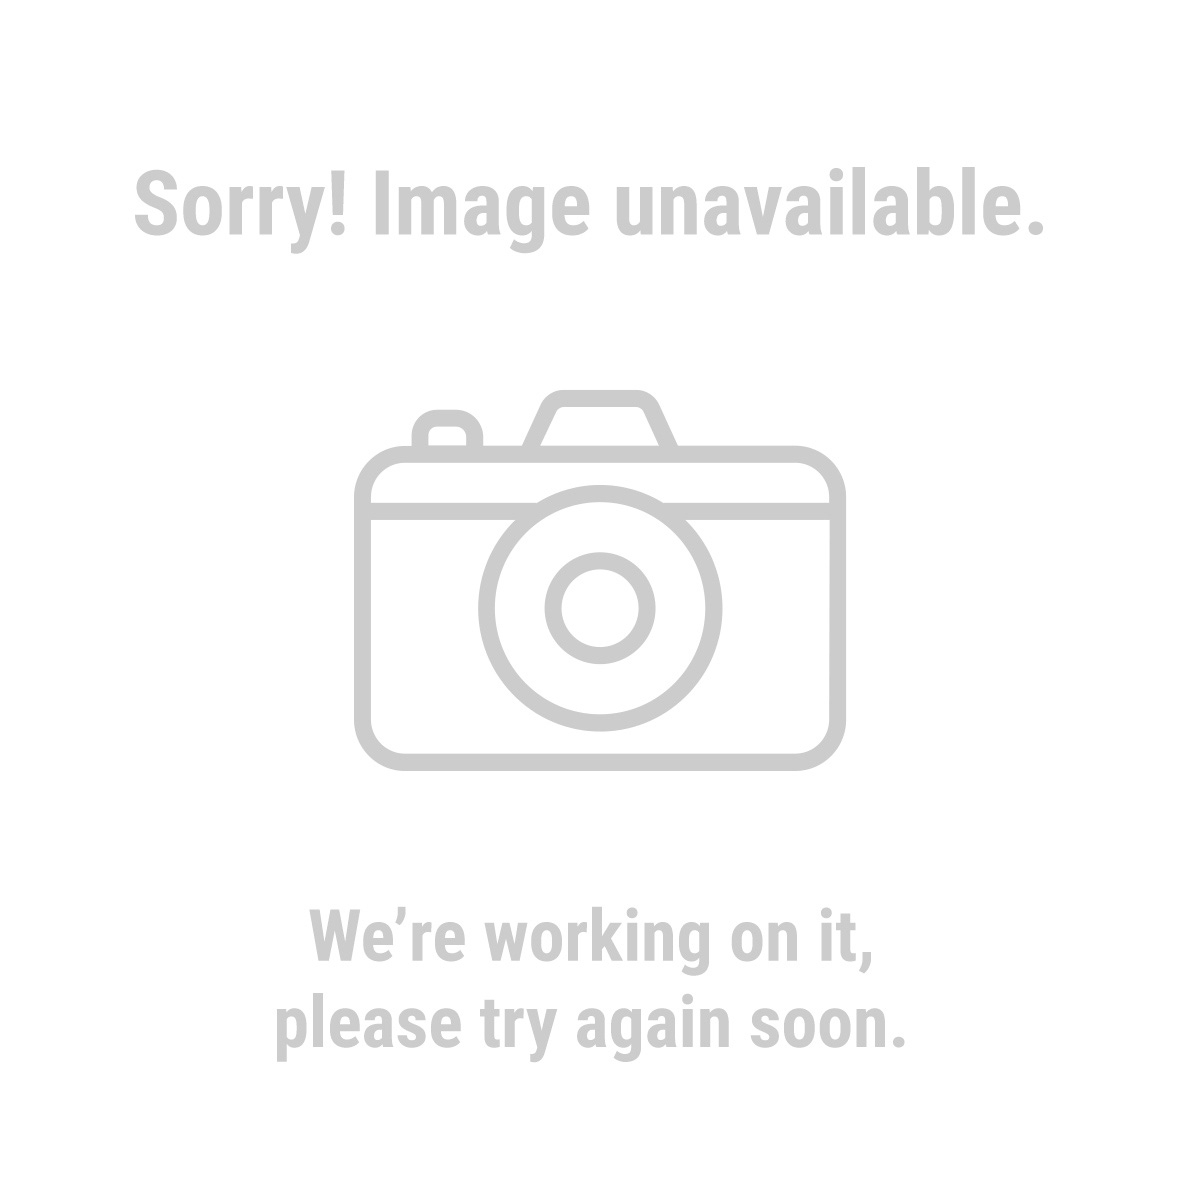 7 Piece Metric Professional Nut Driver Set